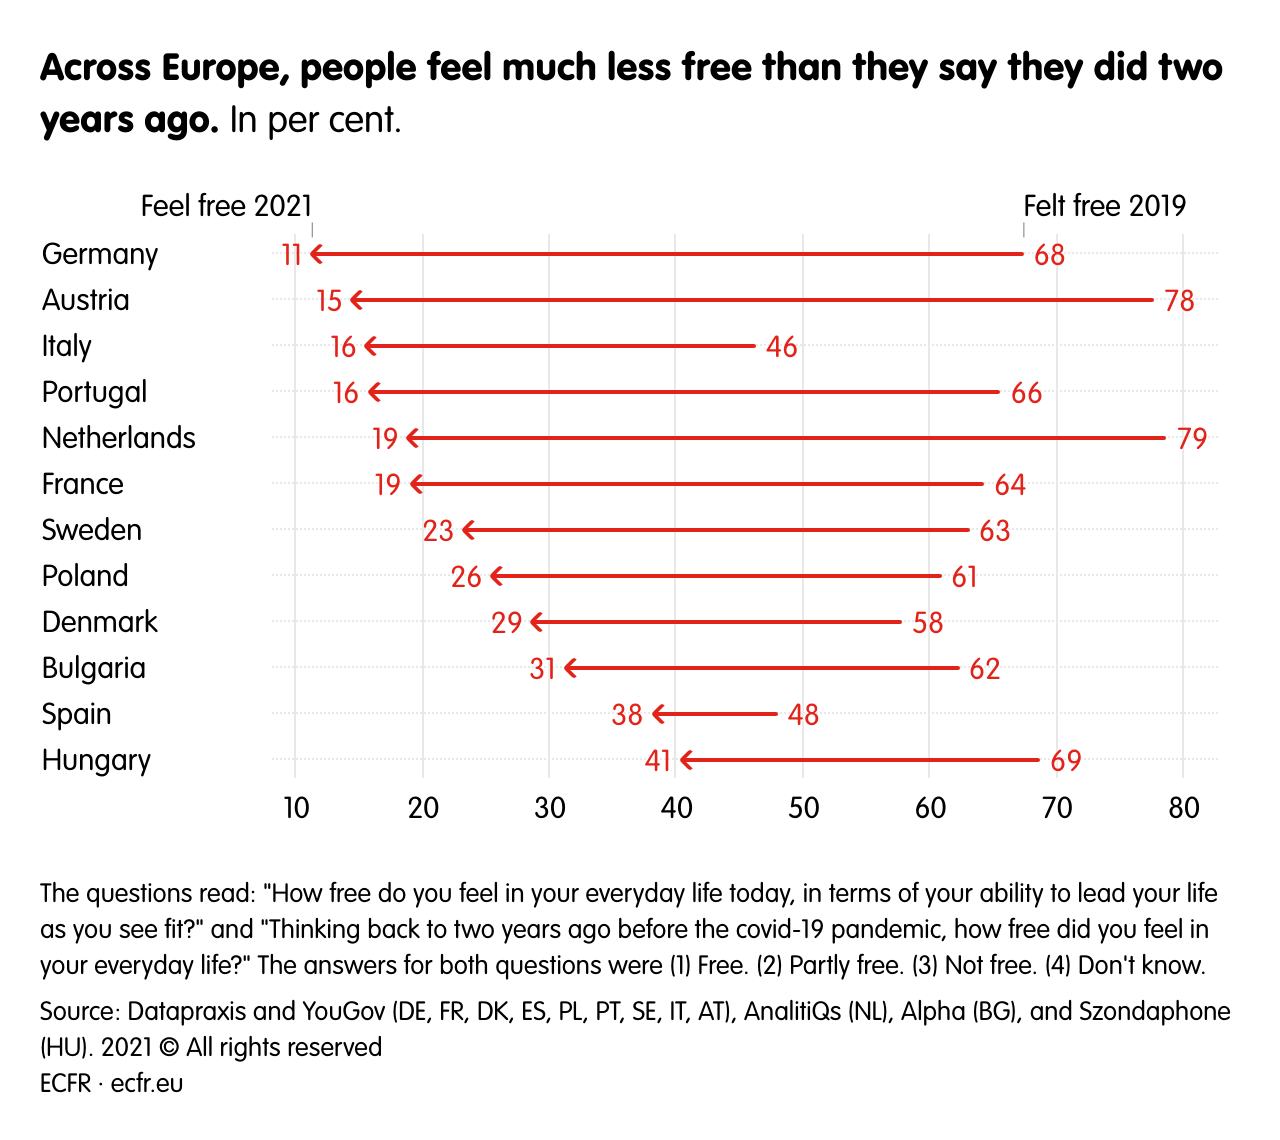 Across Europe, people feel much less free than they say they did two years ago.